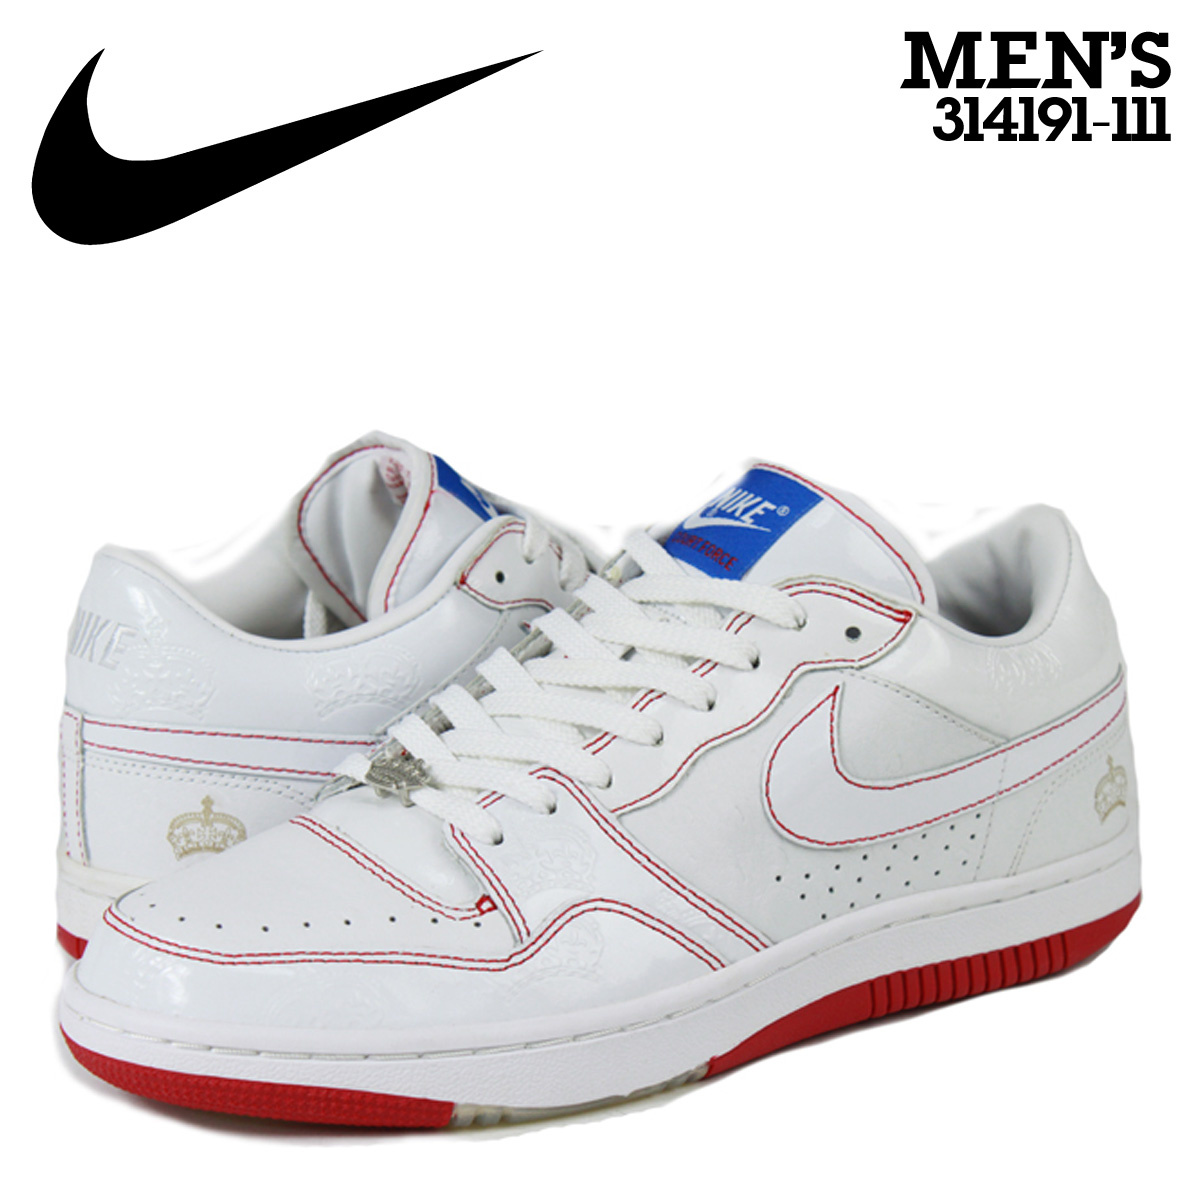 55b1f0b8db1739 Nike NIKE Court force sneakers COURT FORCE LOW MIGHTY CROWN Court force low  the mighty Crown 314191-111 white mens